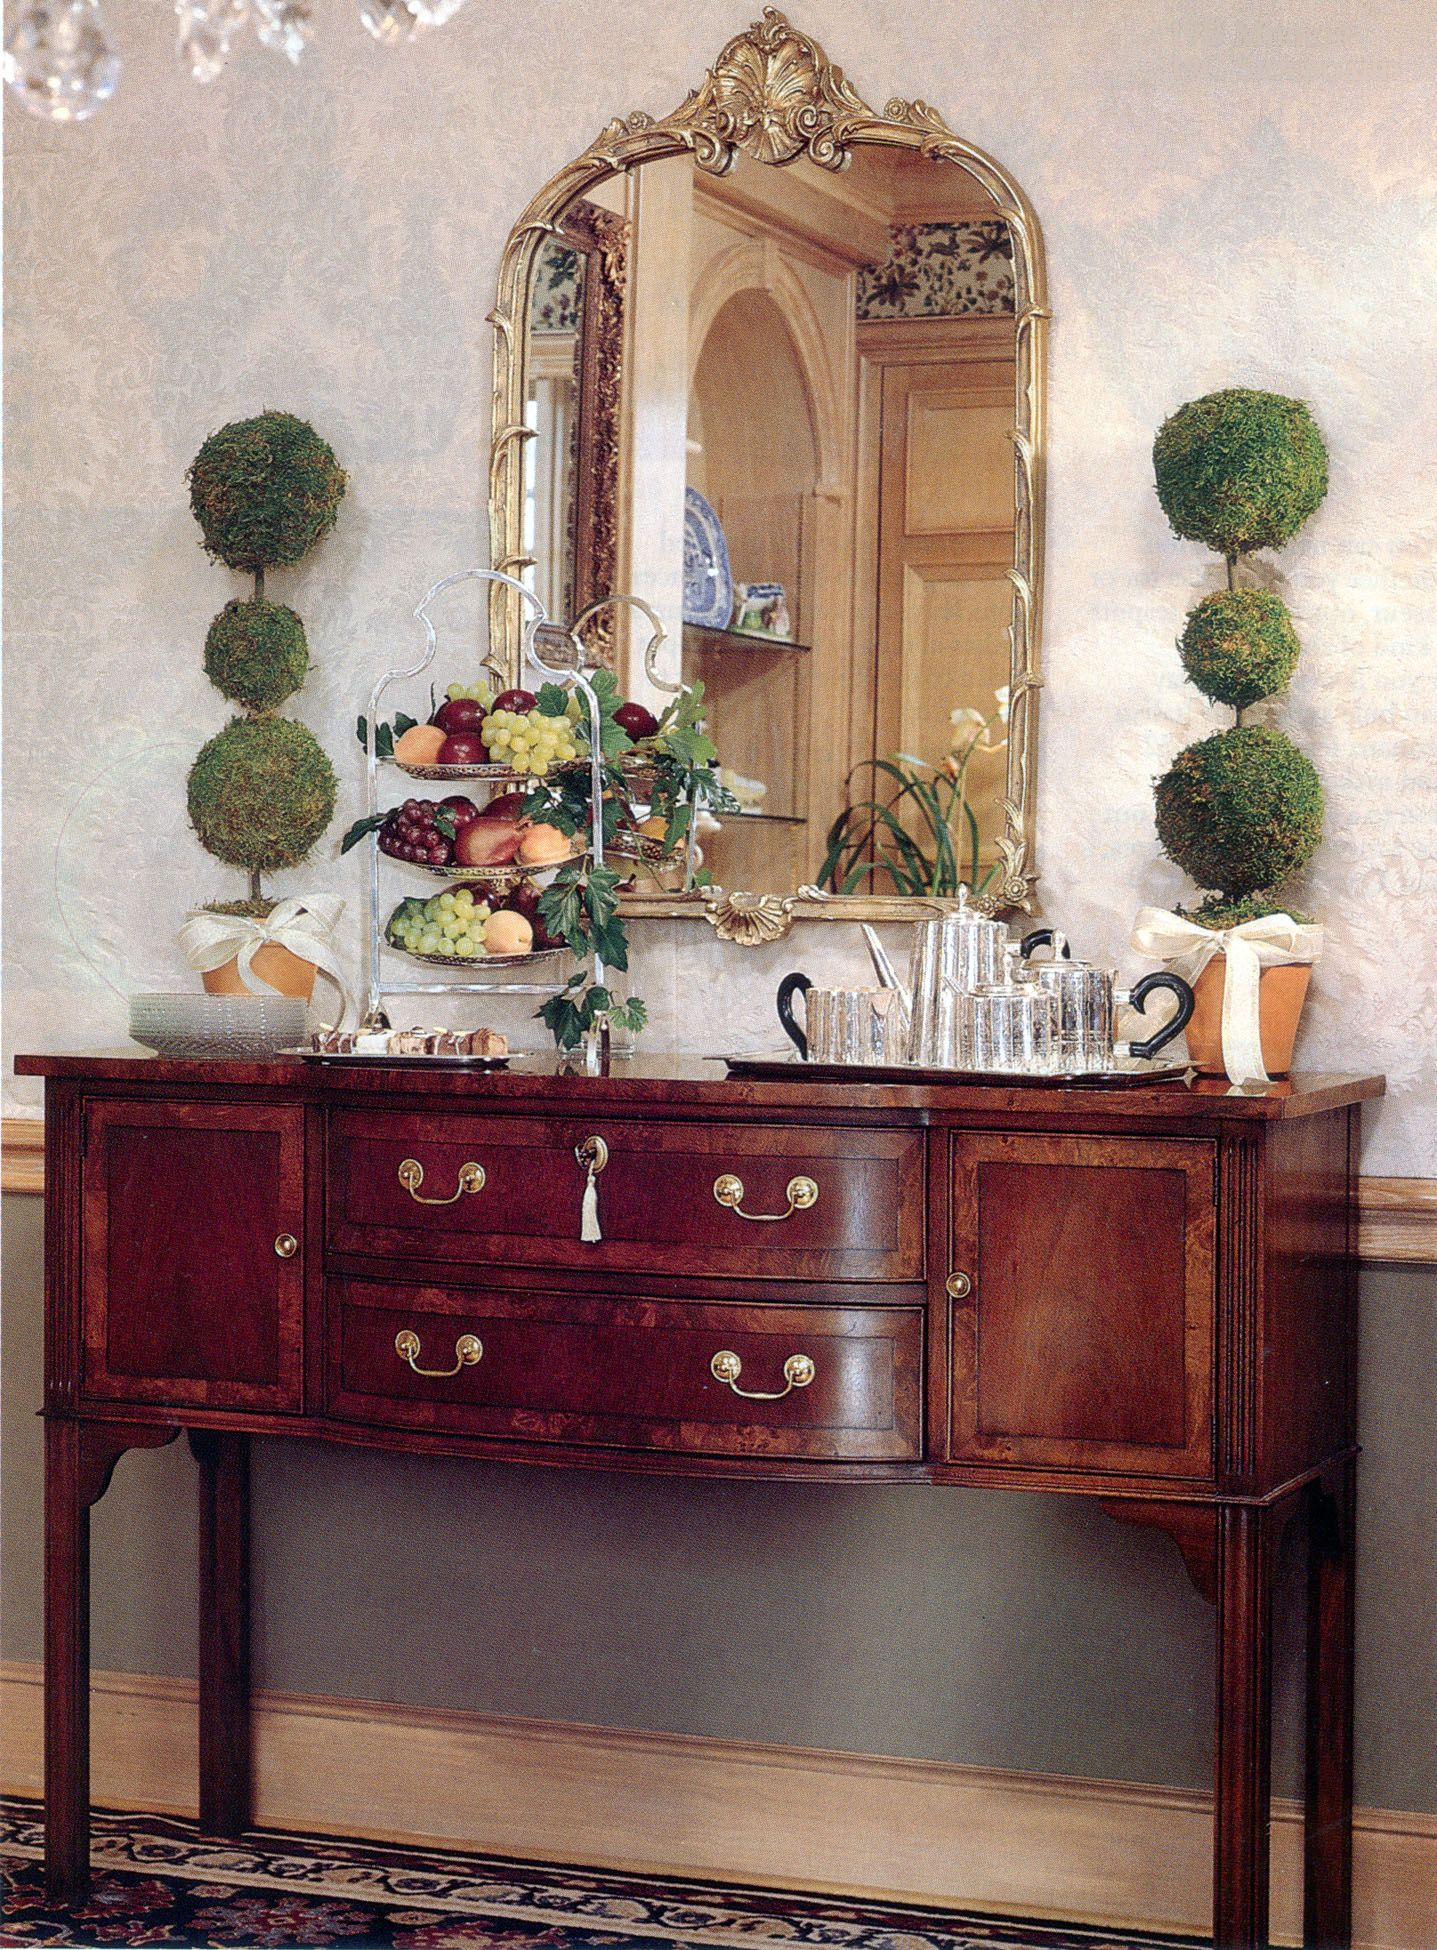 Hepplewhite Sideboard From Hekman And Two Topiaries With Images Dining Room French Dining Room Decor